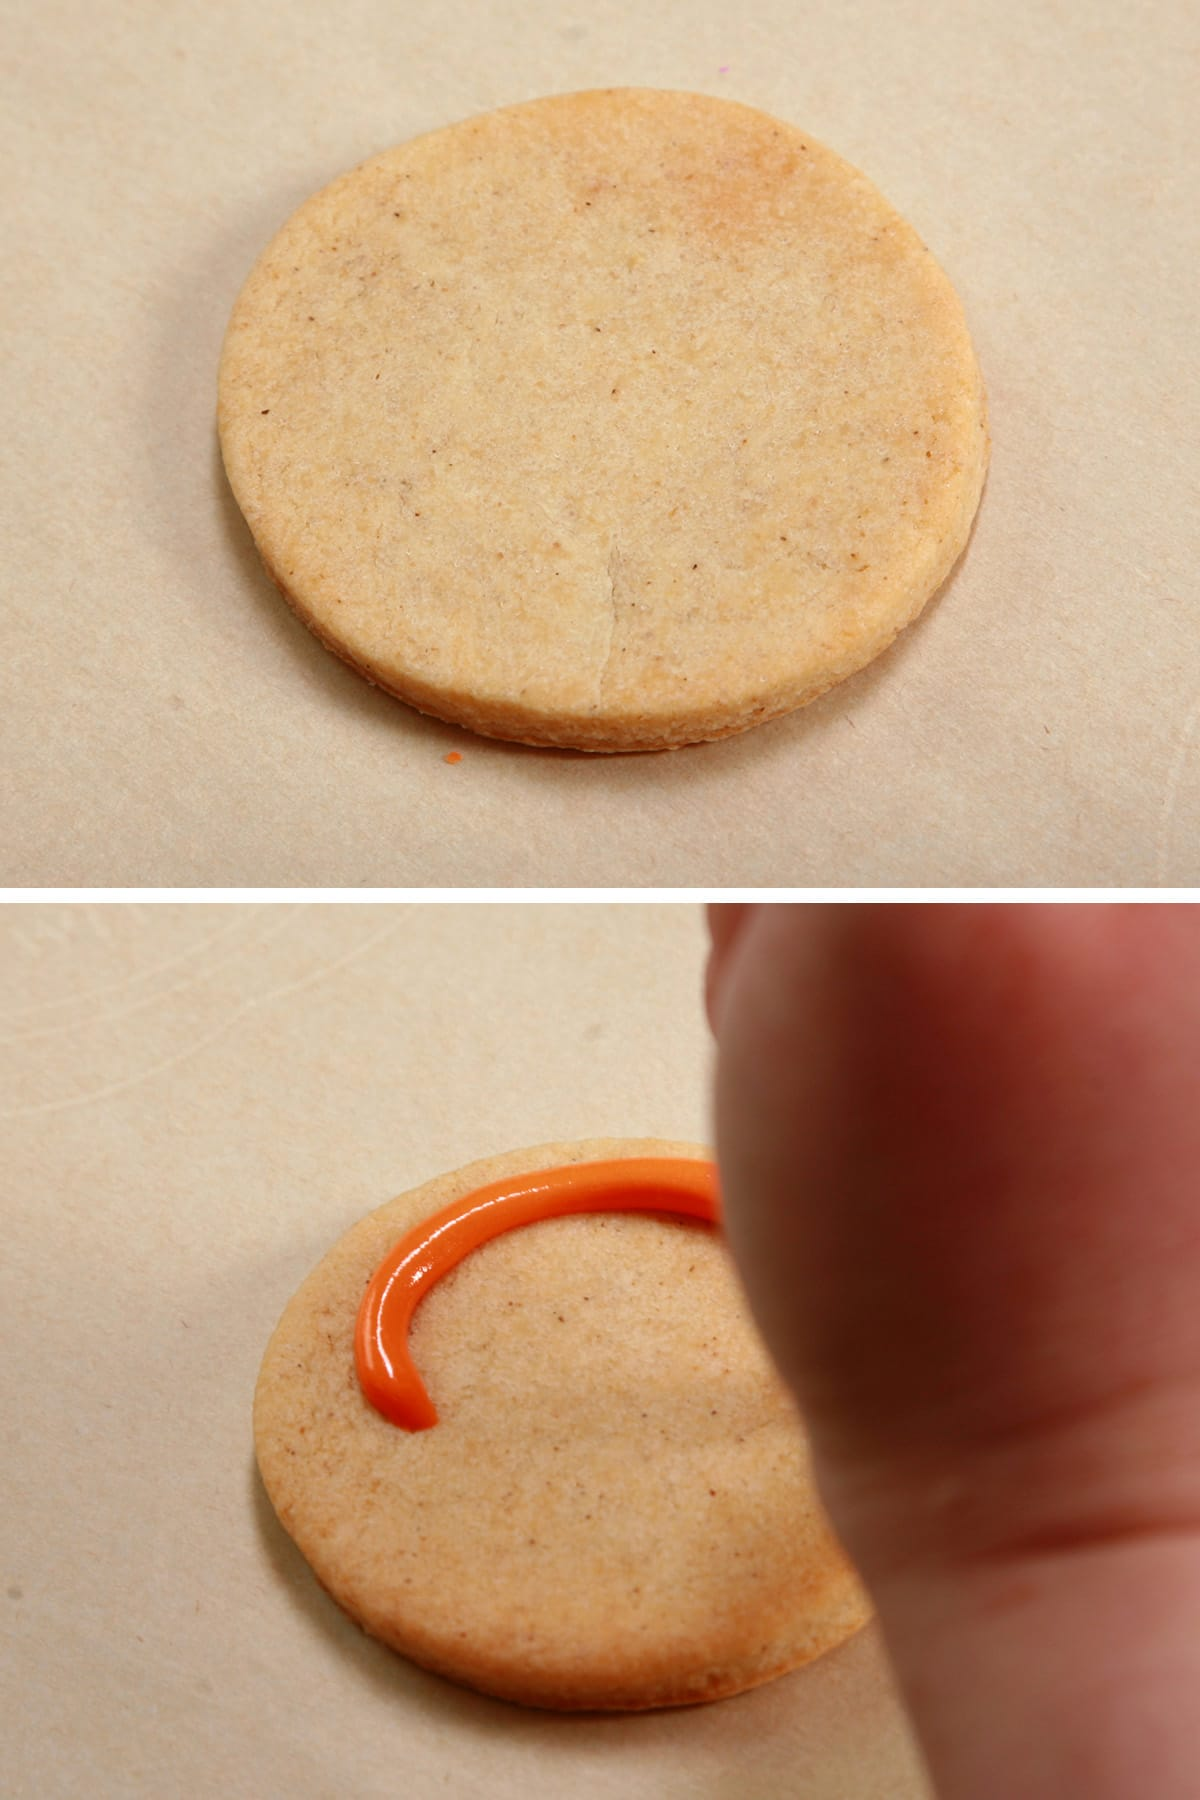 A hand in the foreground is applying orange frosting to a cookie.